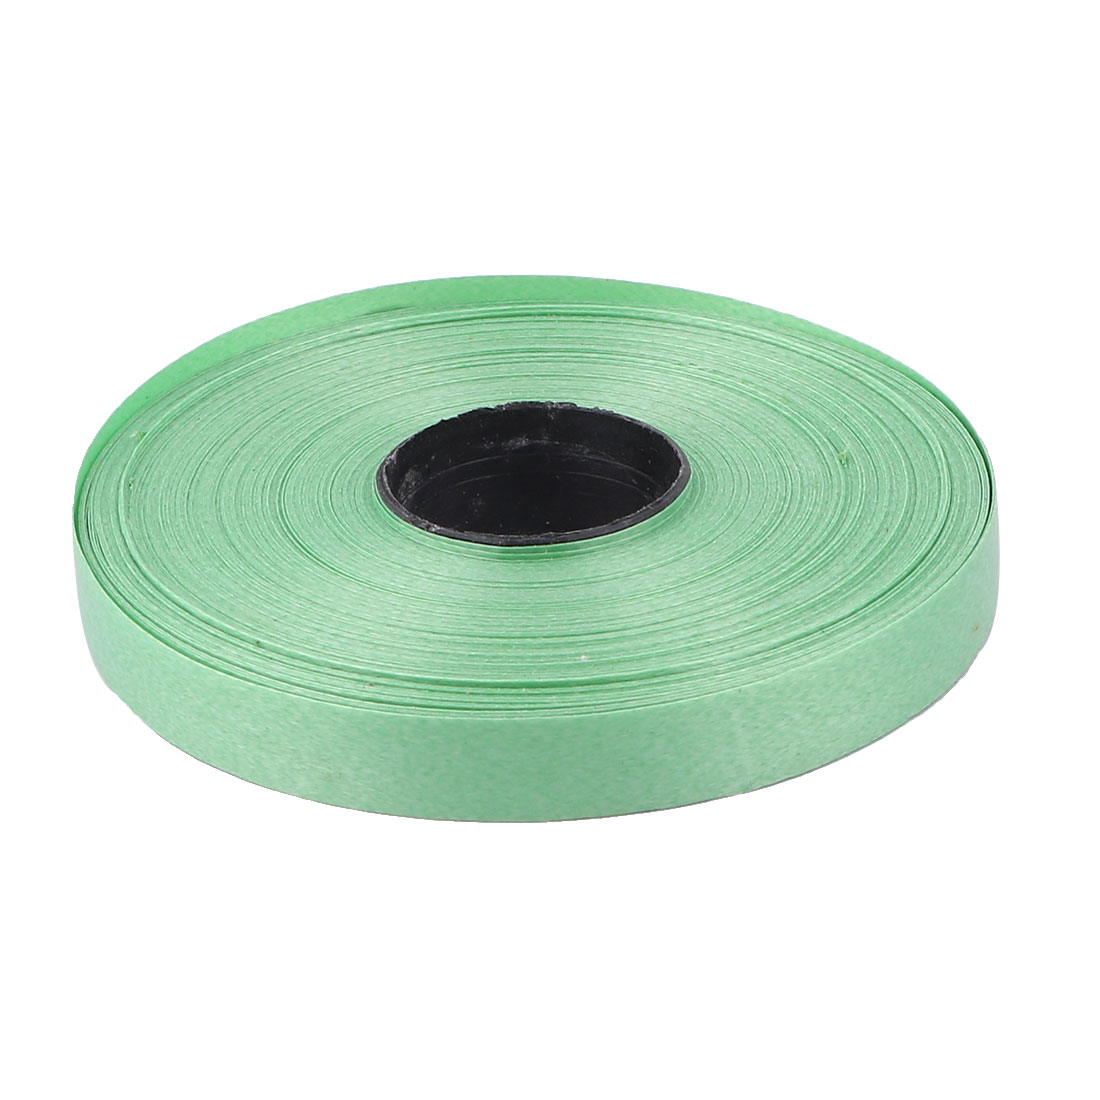 1/2 Inch Wide Polyester Satin Sheer Ribbon Roll 30M 33 Yard Green